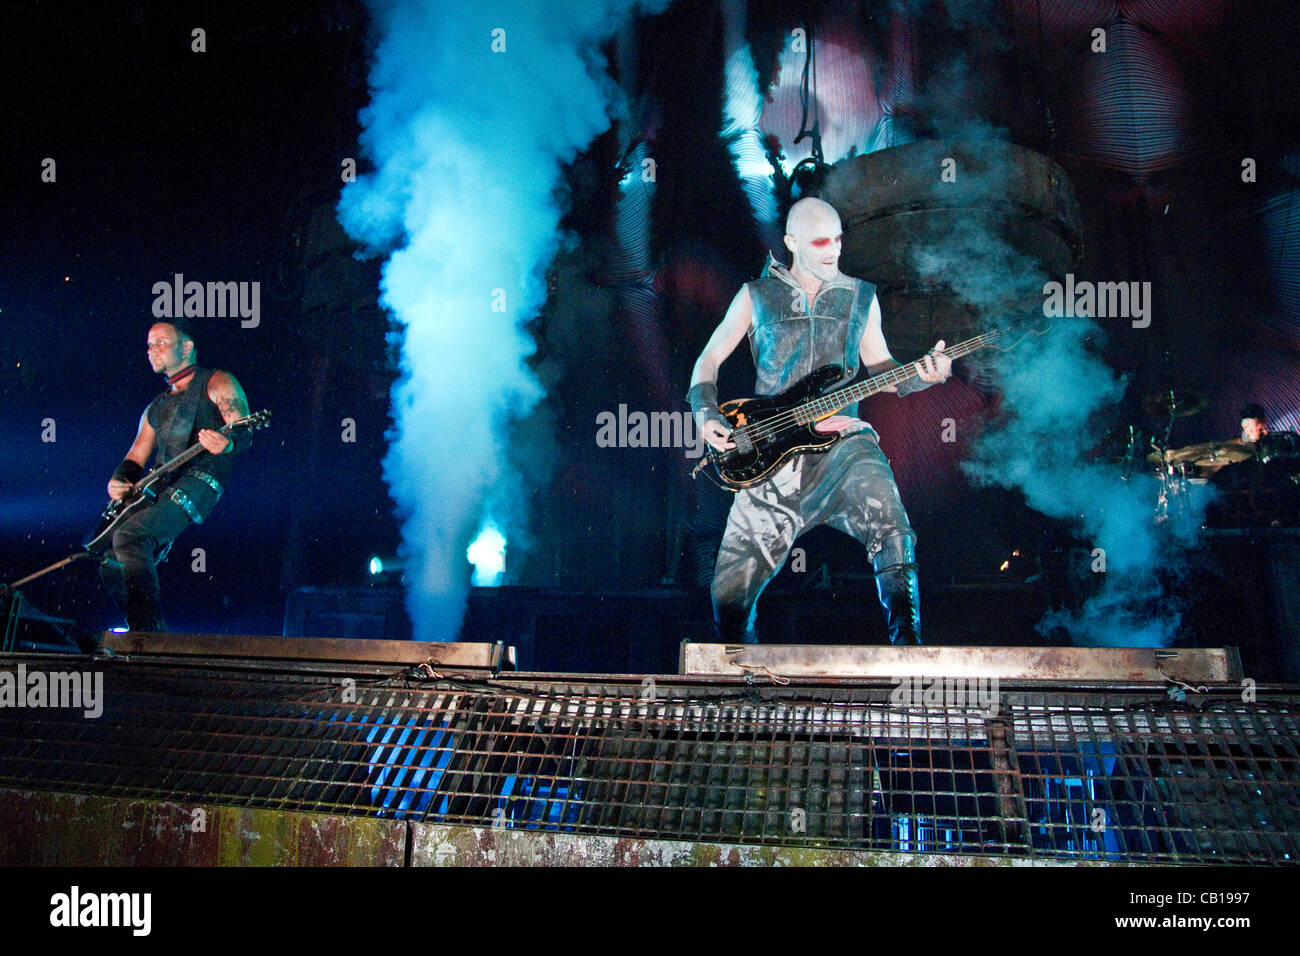 rammstein stockfotos rammstein bilder alamy. Black Bedroom Furniture Sets. Home Design Ideas